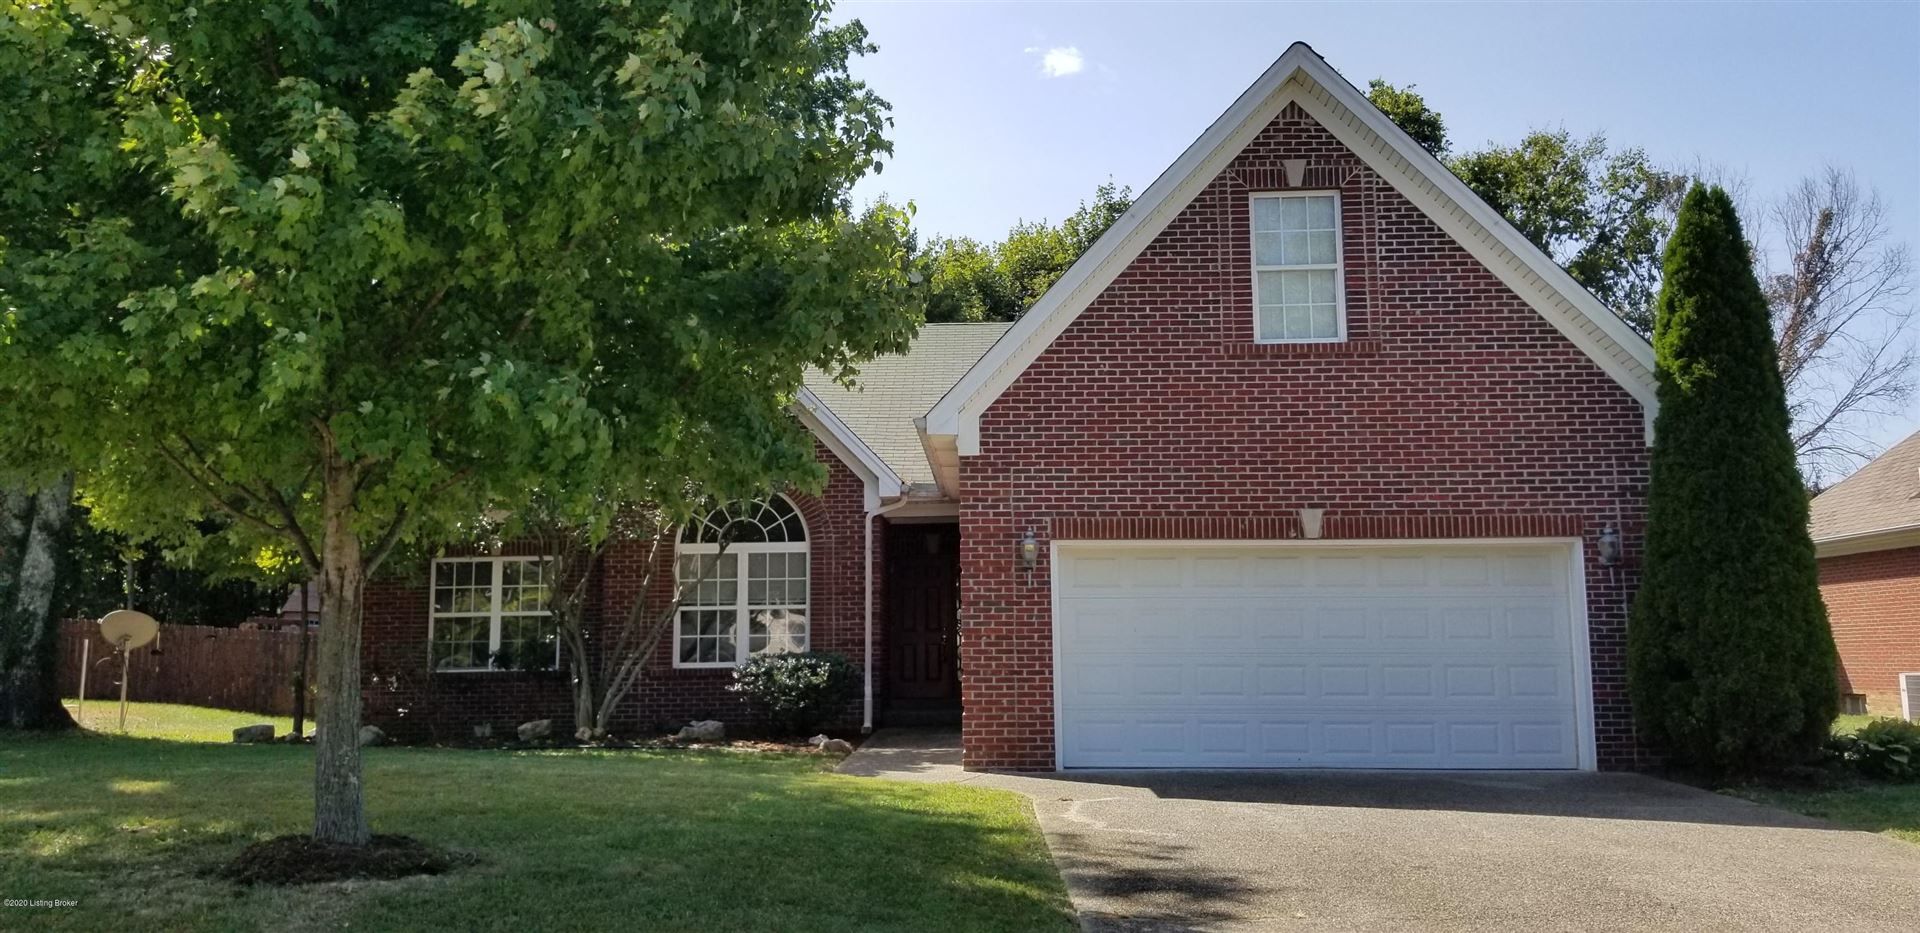 Property Image Of 3219 S Winchester Acres Rd In Louisville, Ky